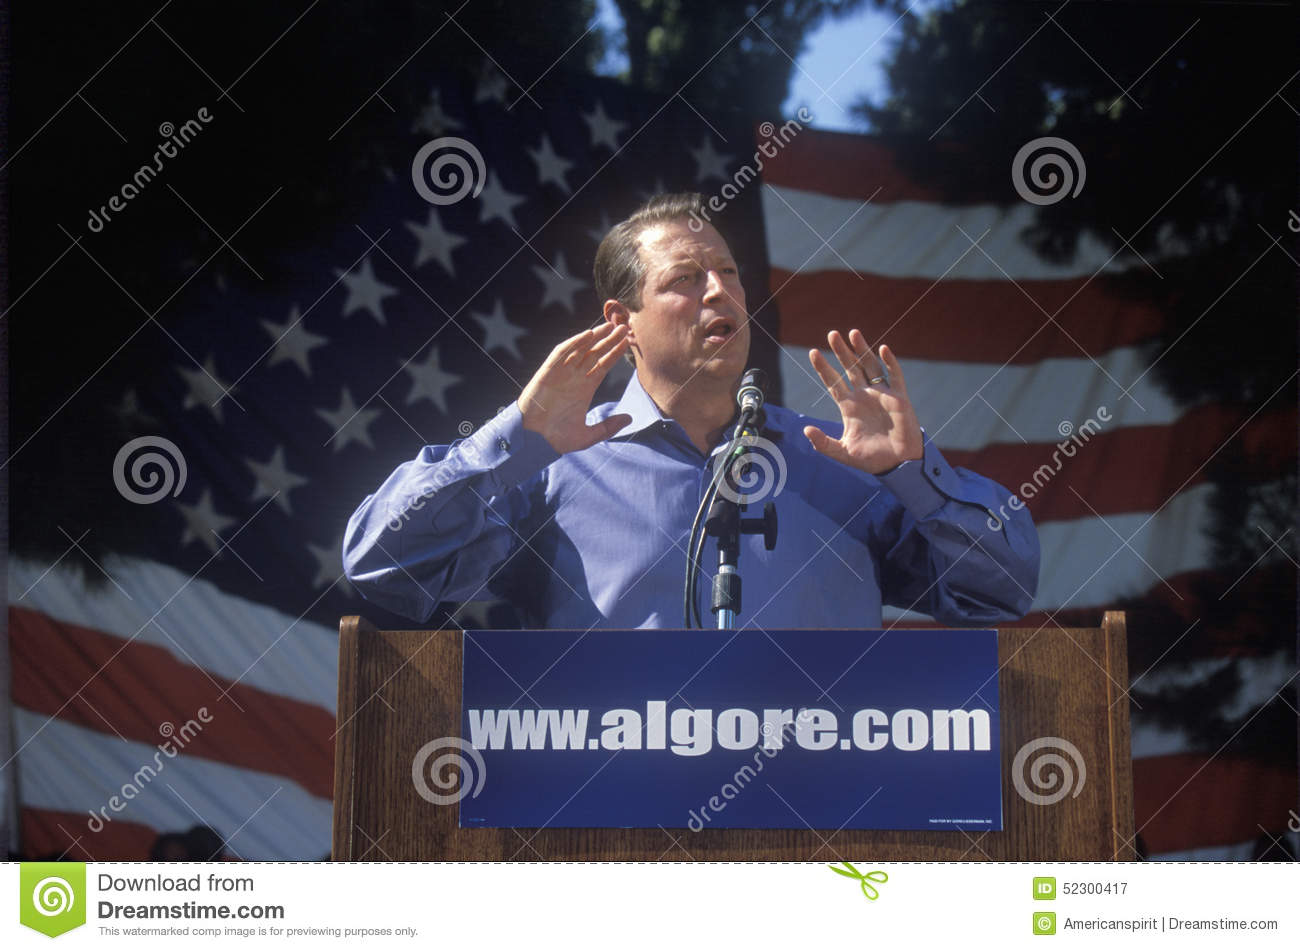 Vice President Al Gore campaigns for the Democratic presidential nomination at Lakewood Park in Sunnyvale, California